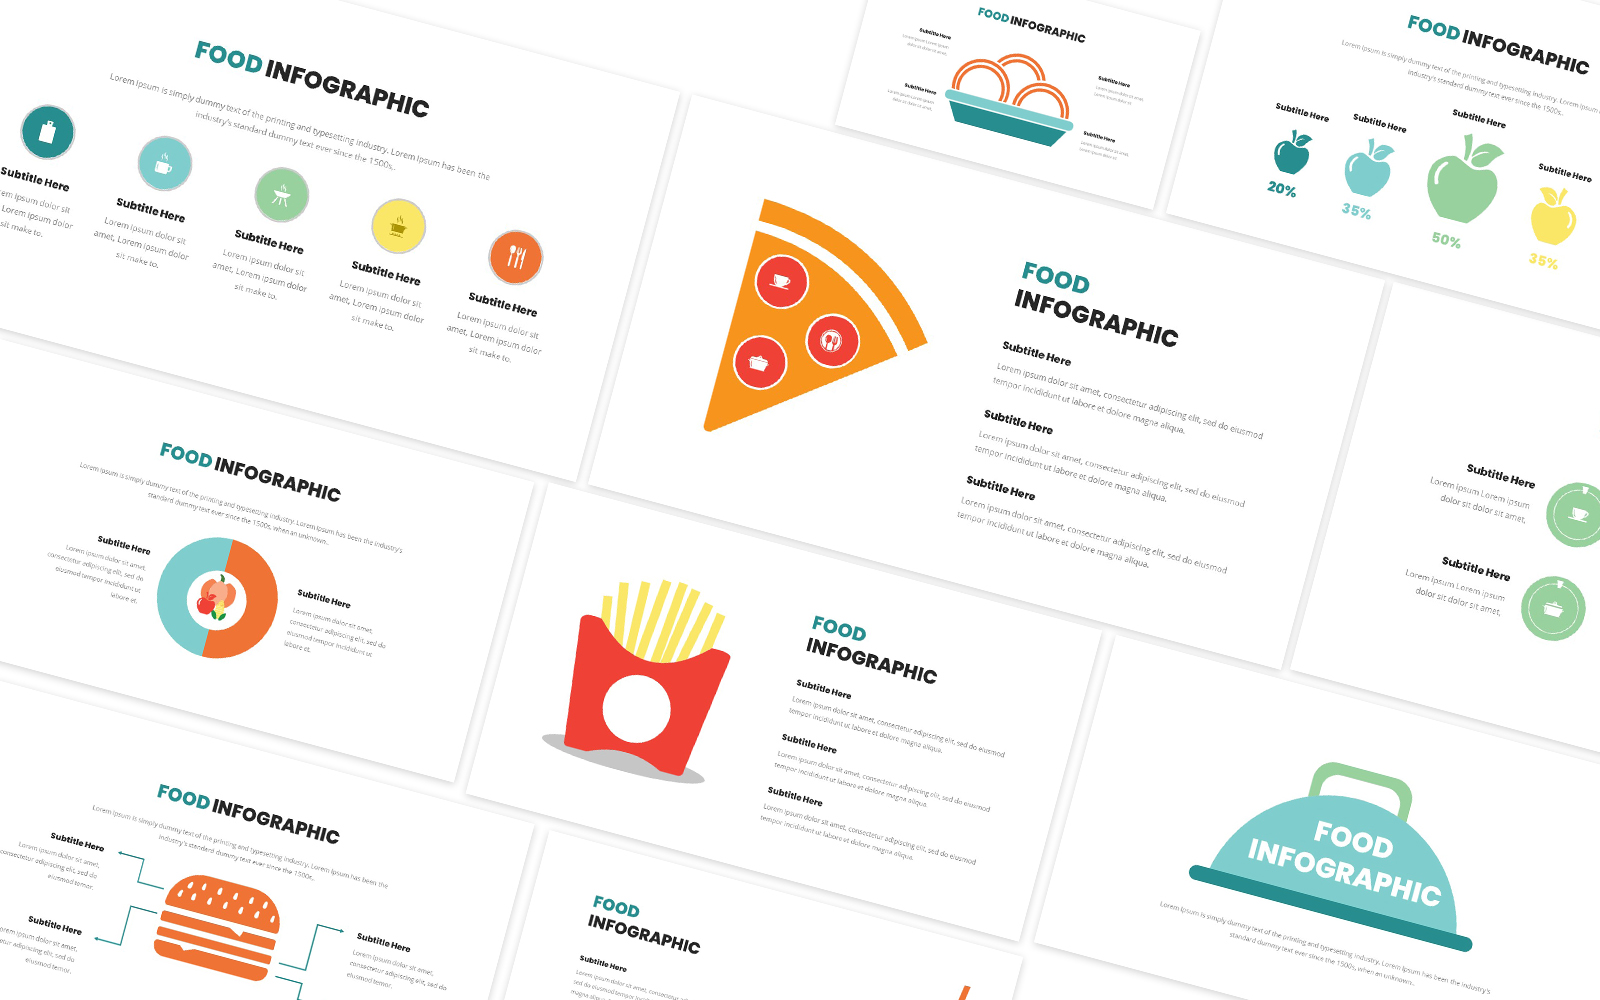 Food Infographic Powerpoint